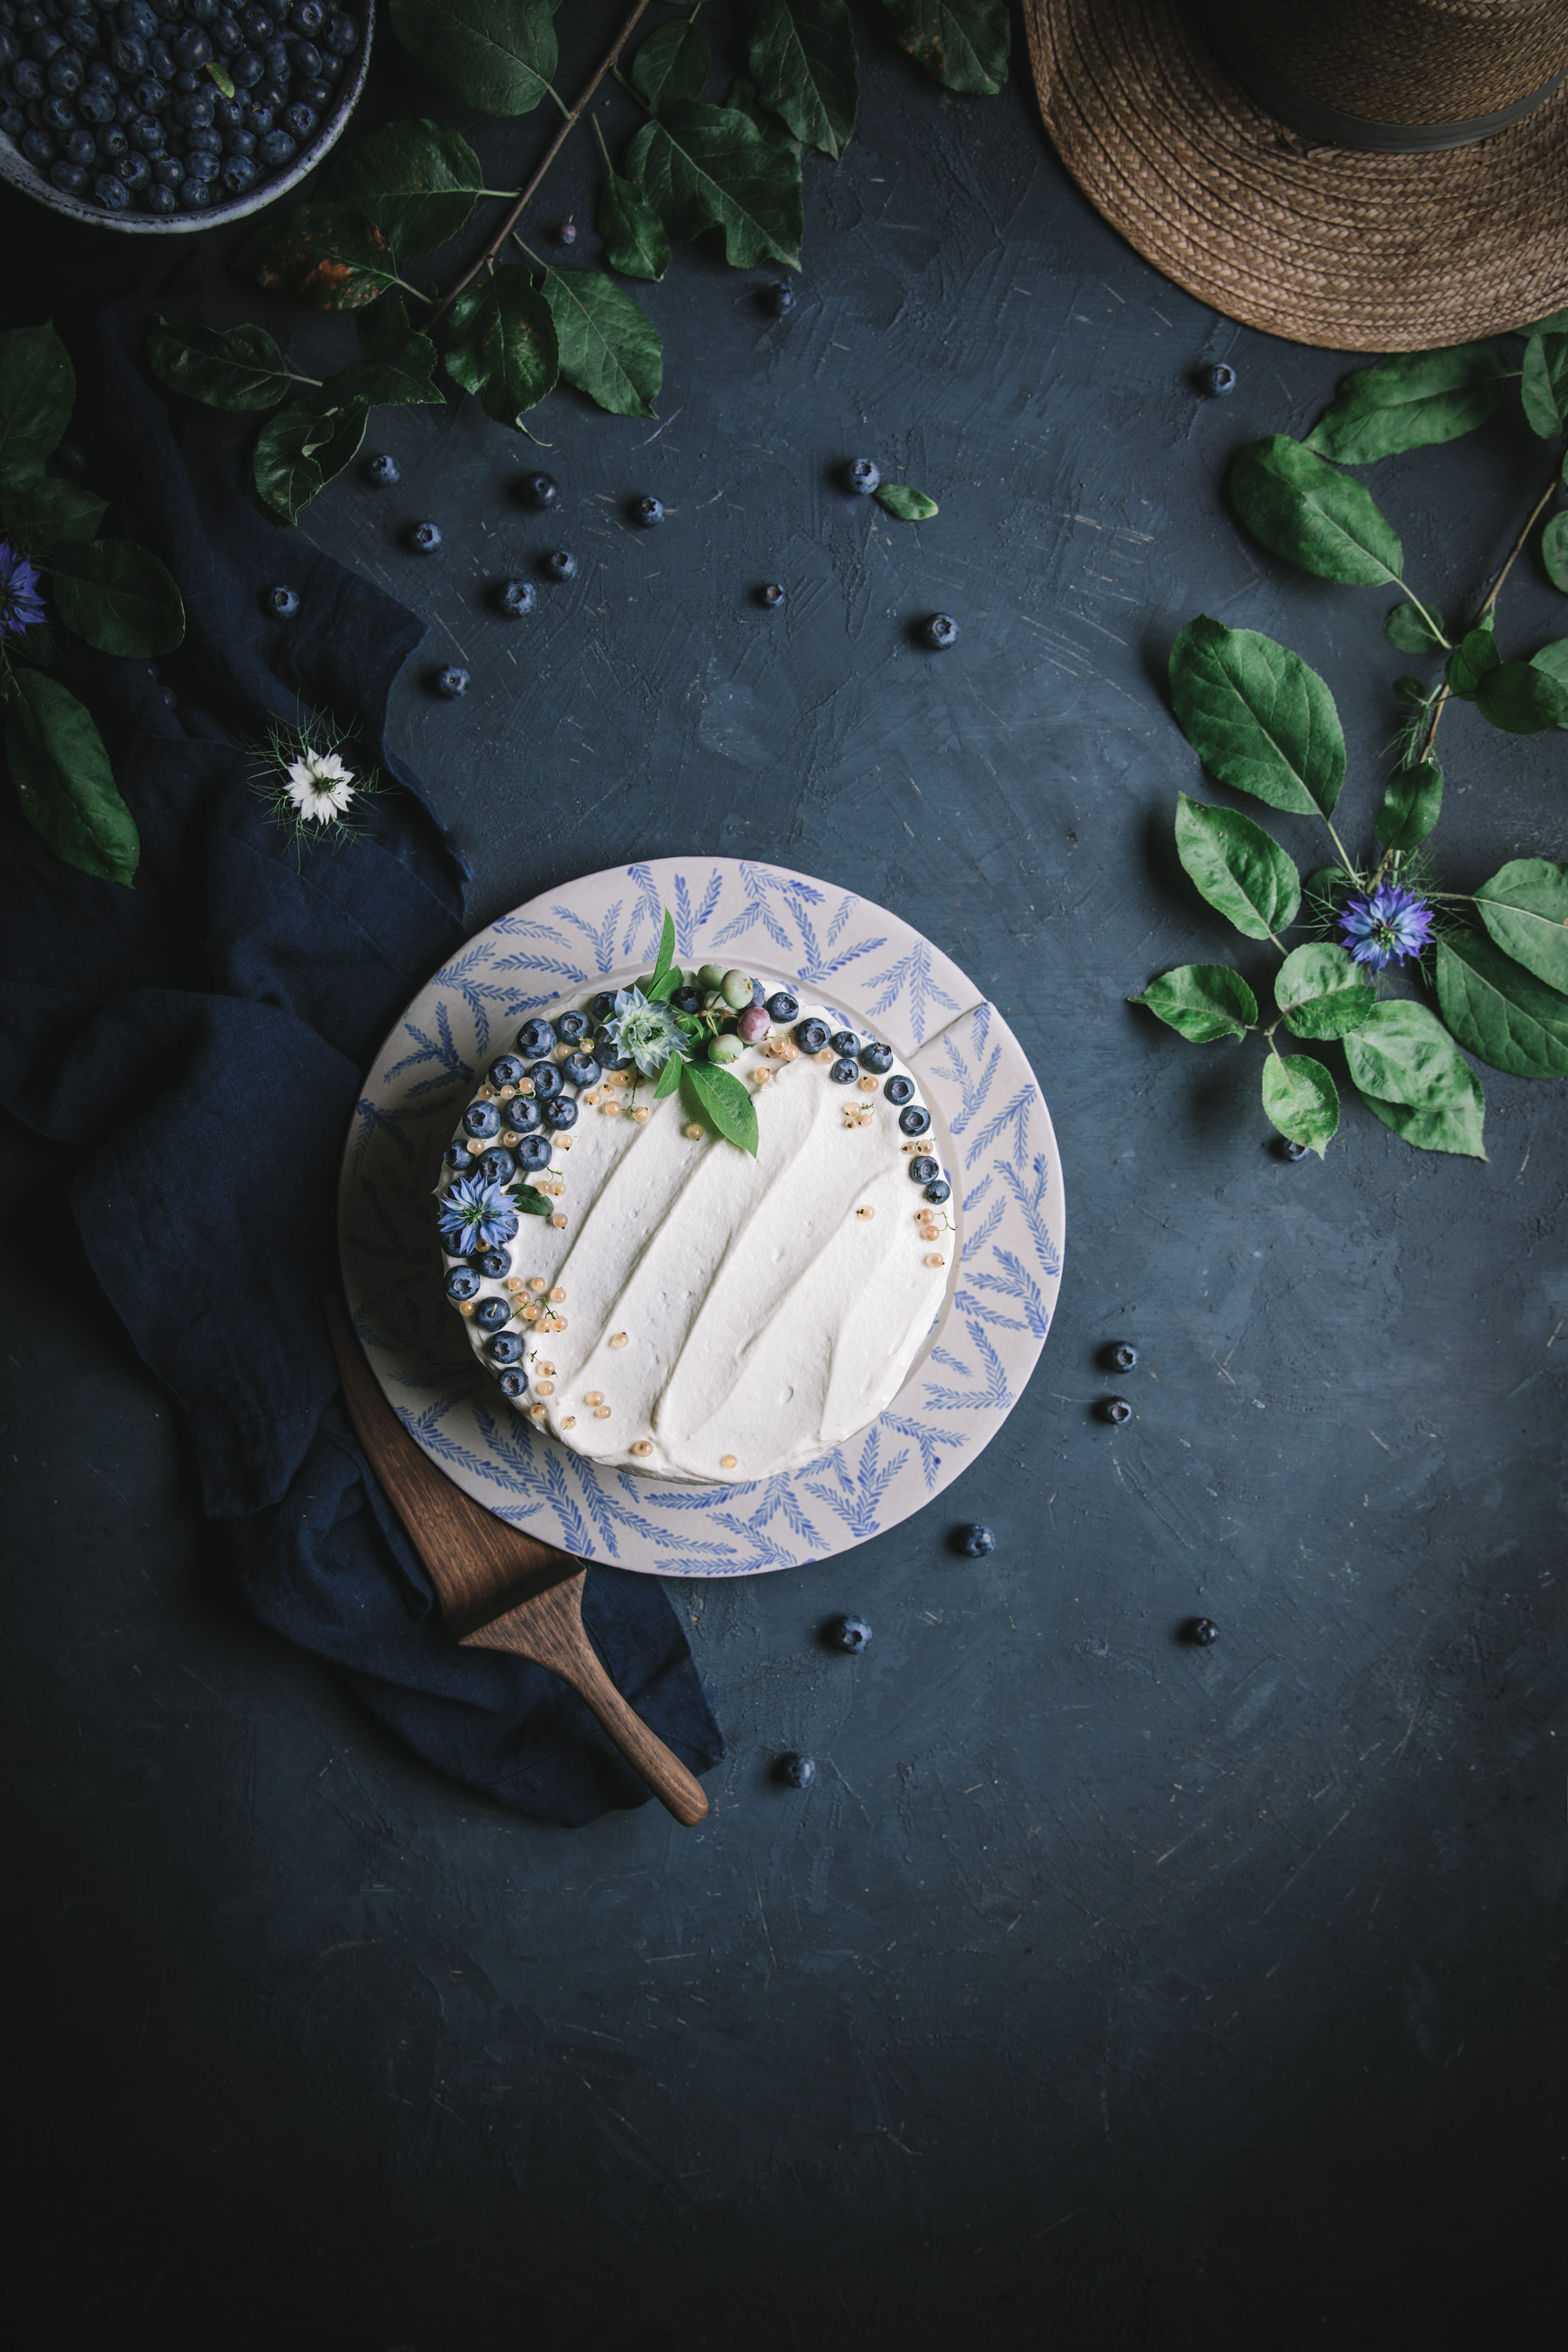 Blue Velvet Cake with Cream Cheese Frosting